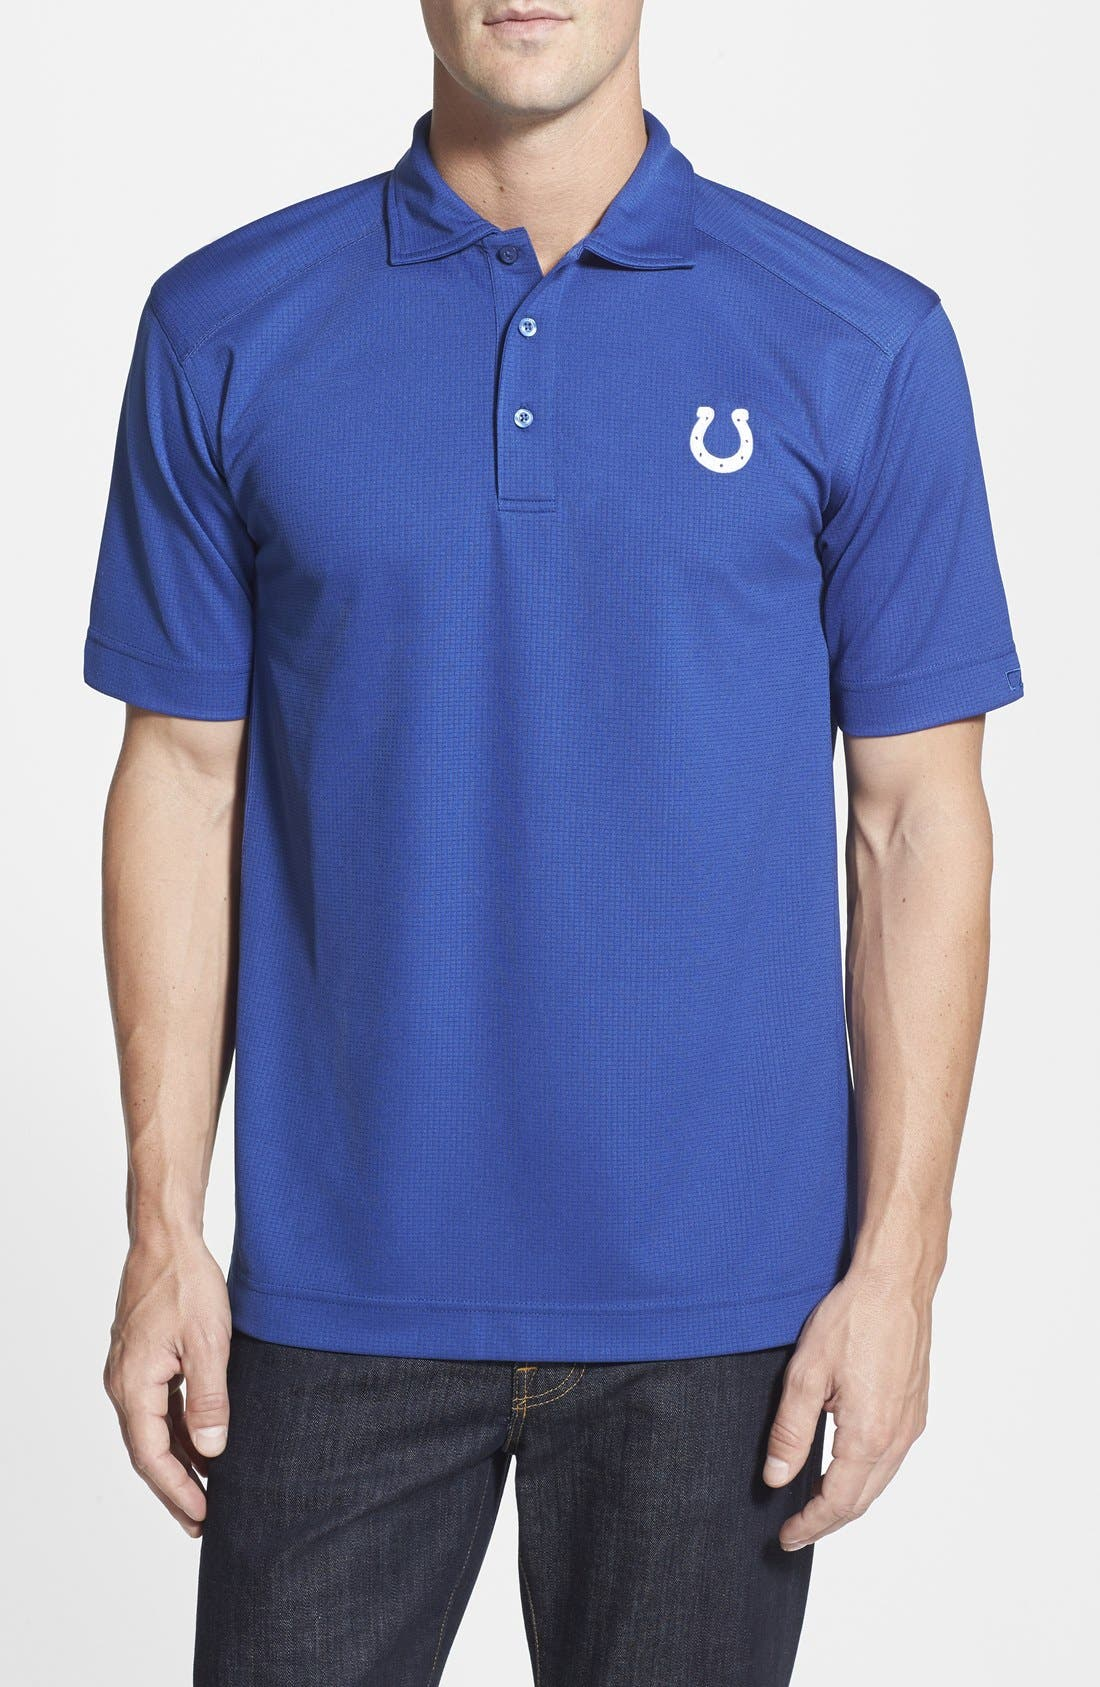 Alternate Image 1 Selected - Cutter & Buck Indianapolis Colts - Genre DryTec Moisture Wicking Polo